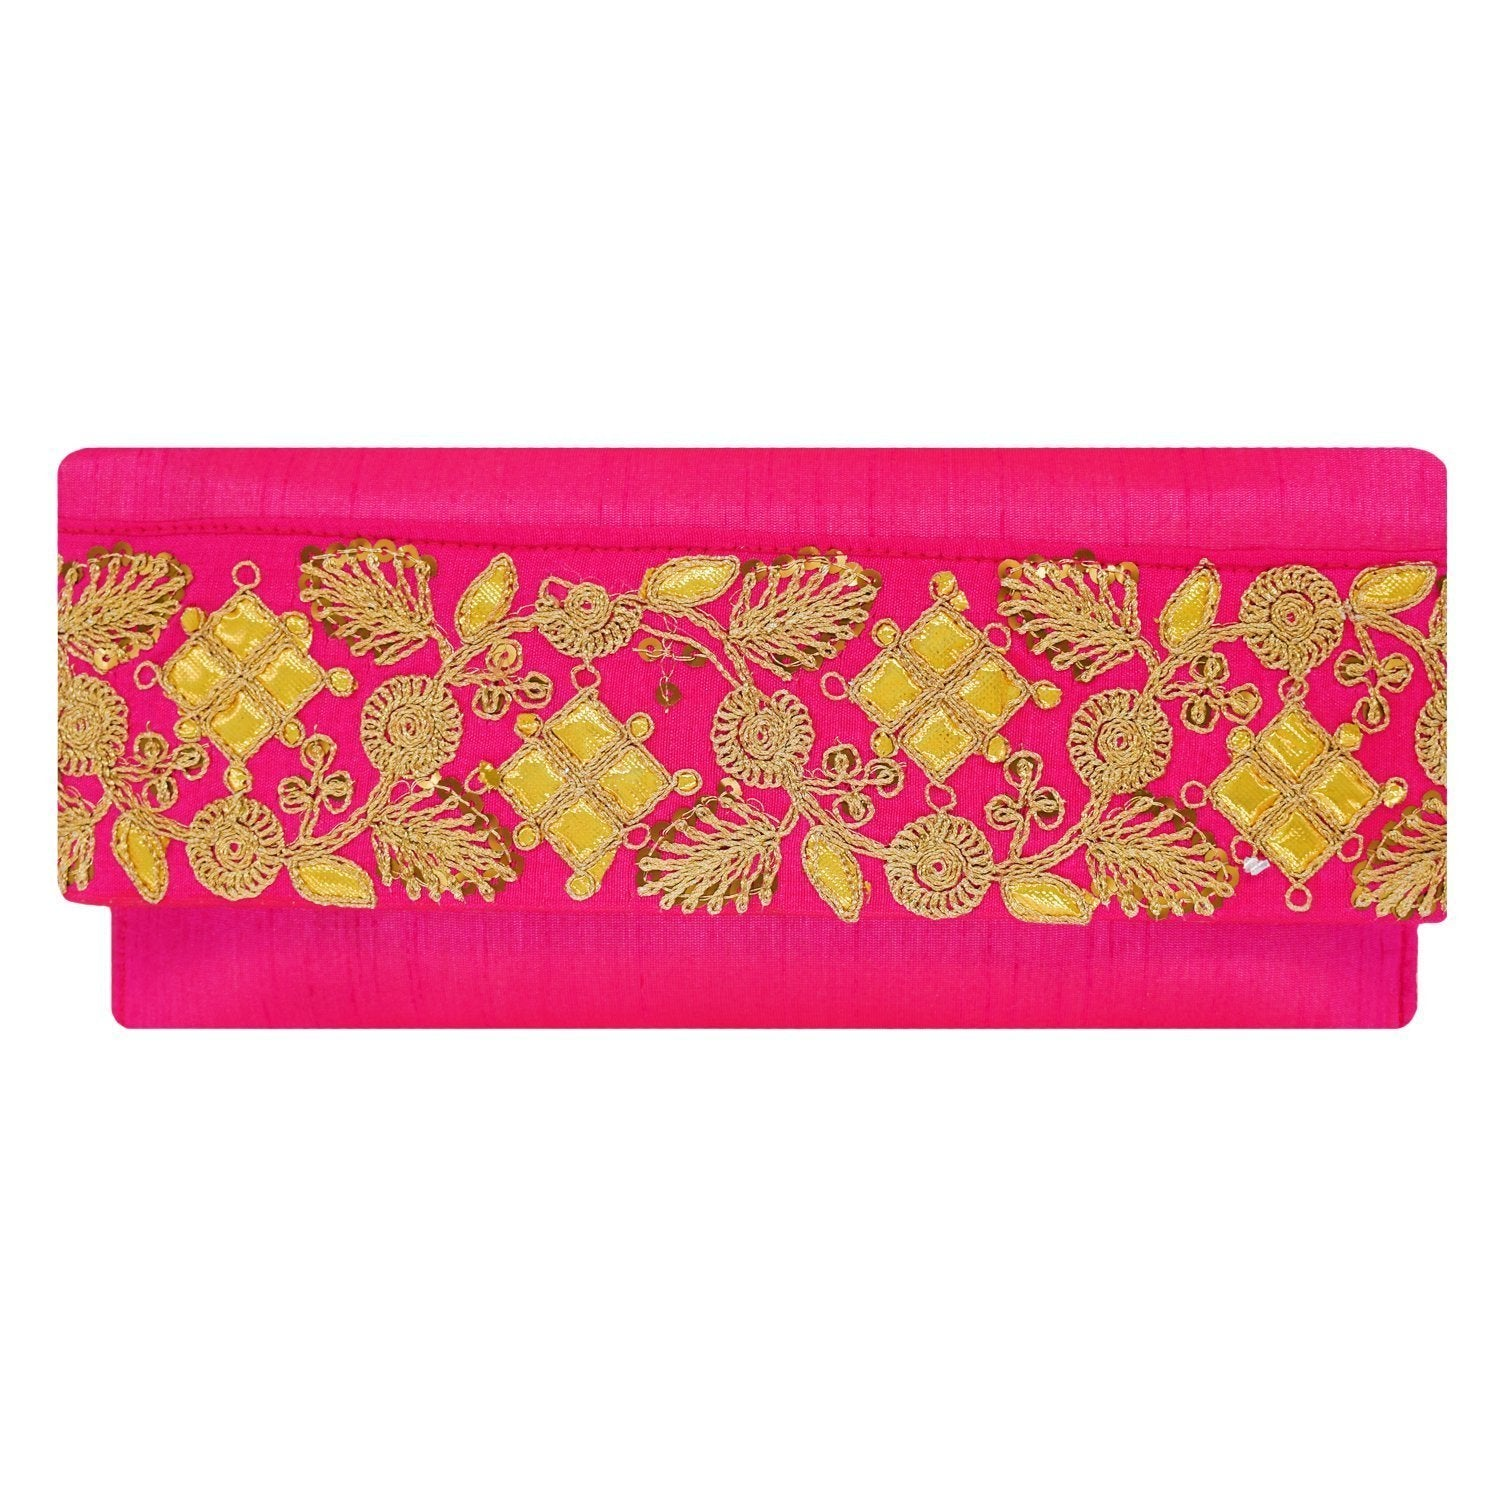 Ethnic Silk Embroidery Work Clutch (Pink) - Bagaholics Gift